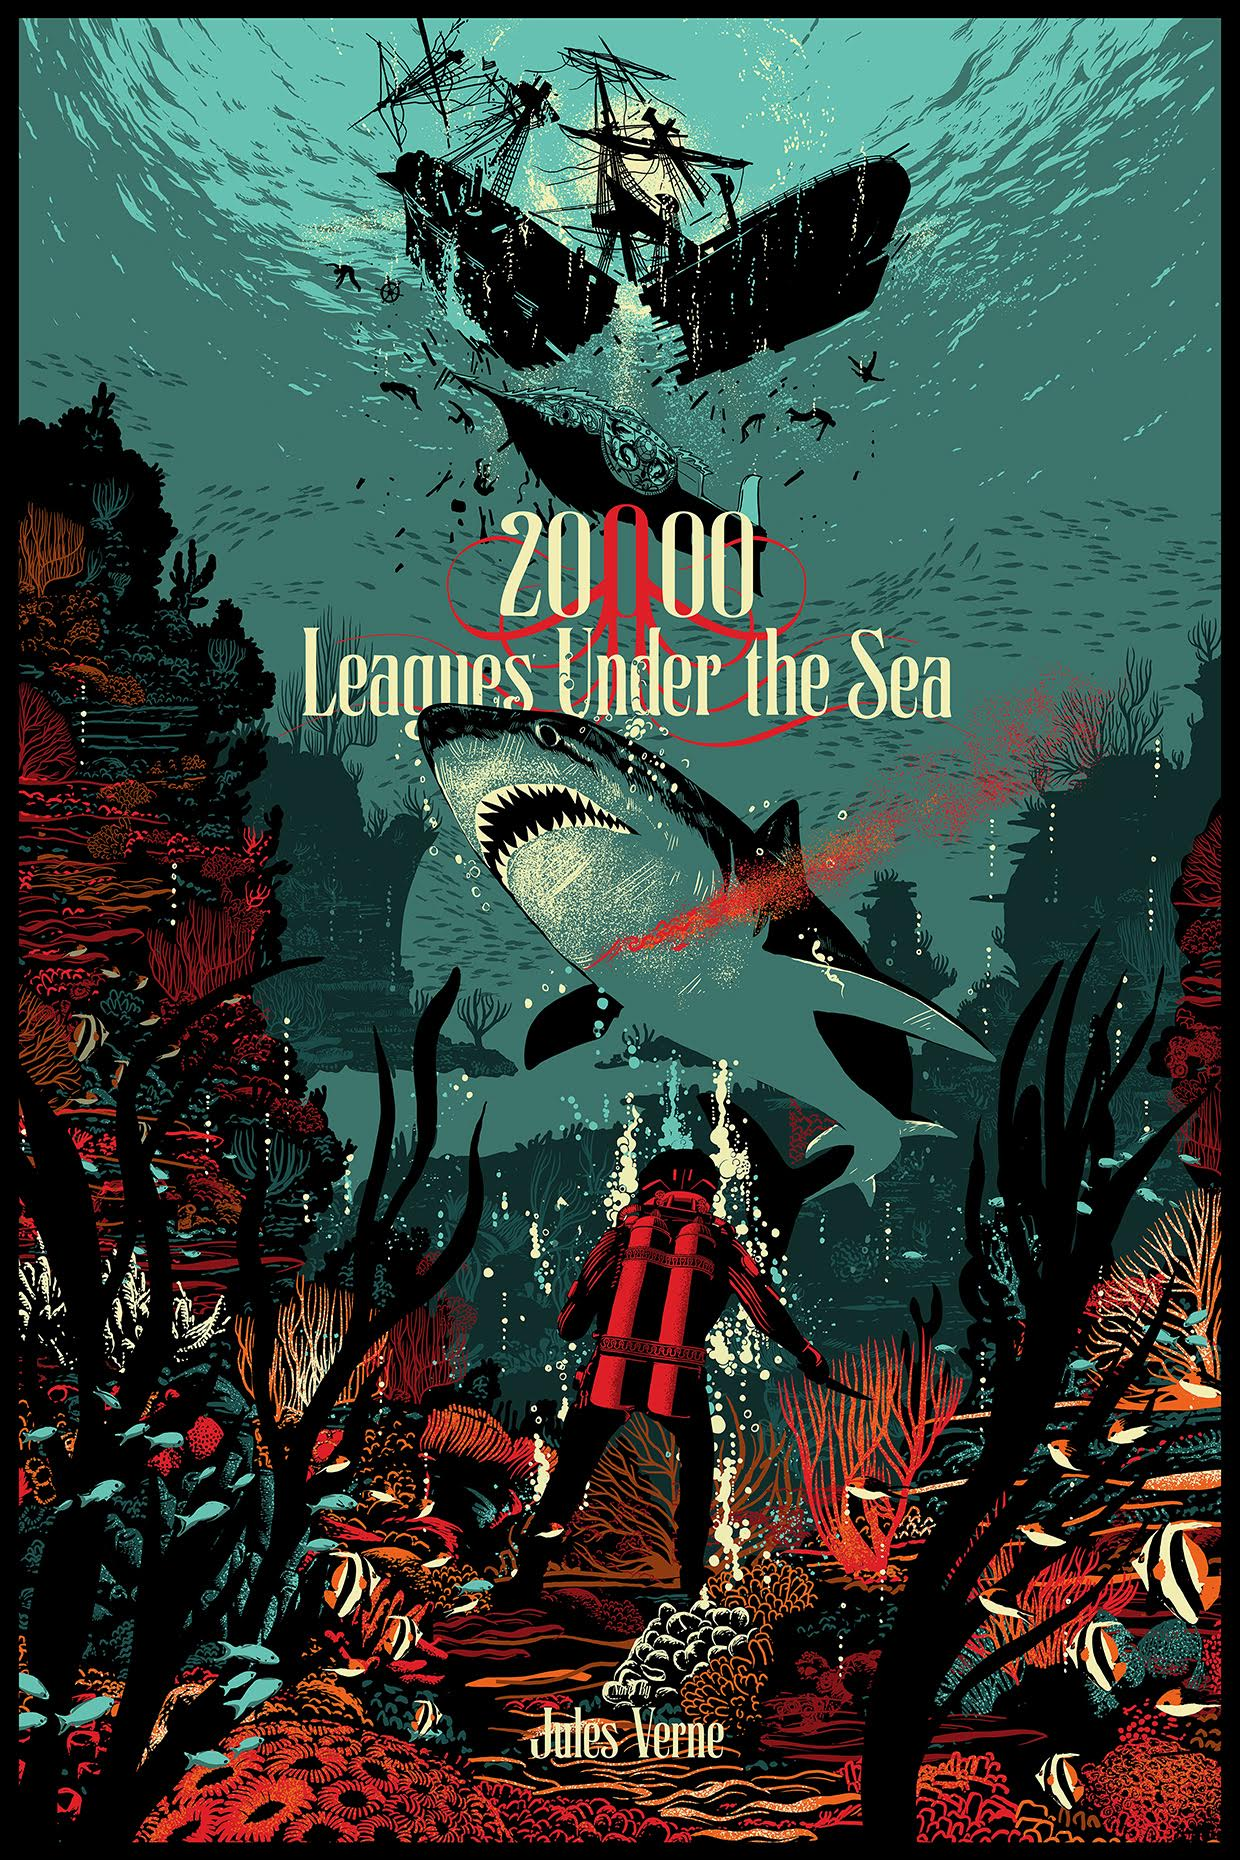 High Resolution Wallpaper | 20,000 Leagues Under The Sea 1240x1860 px